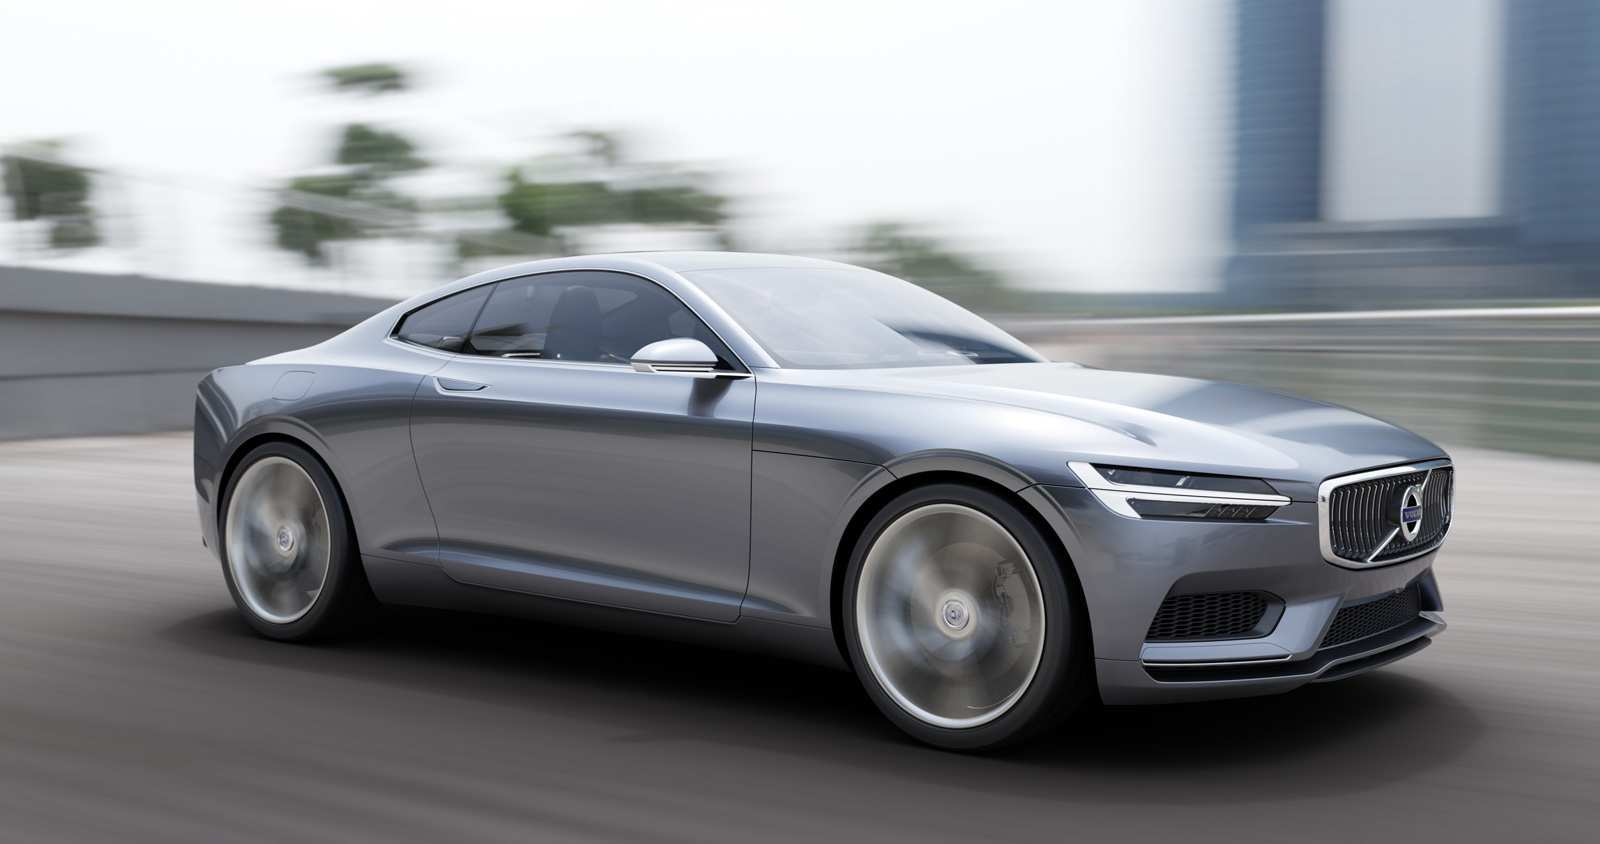 68 All New 2020 Volvo S90 Concept